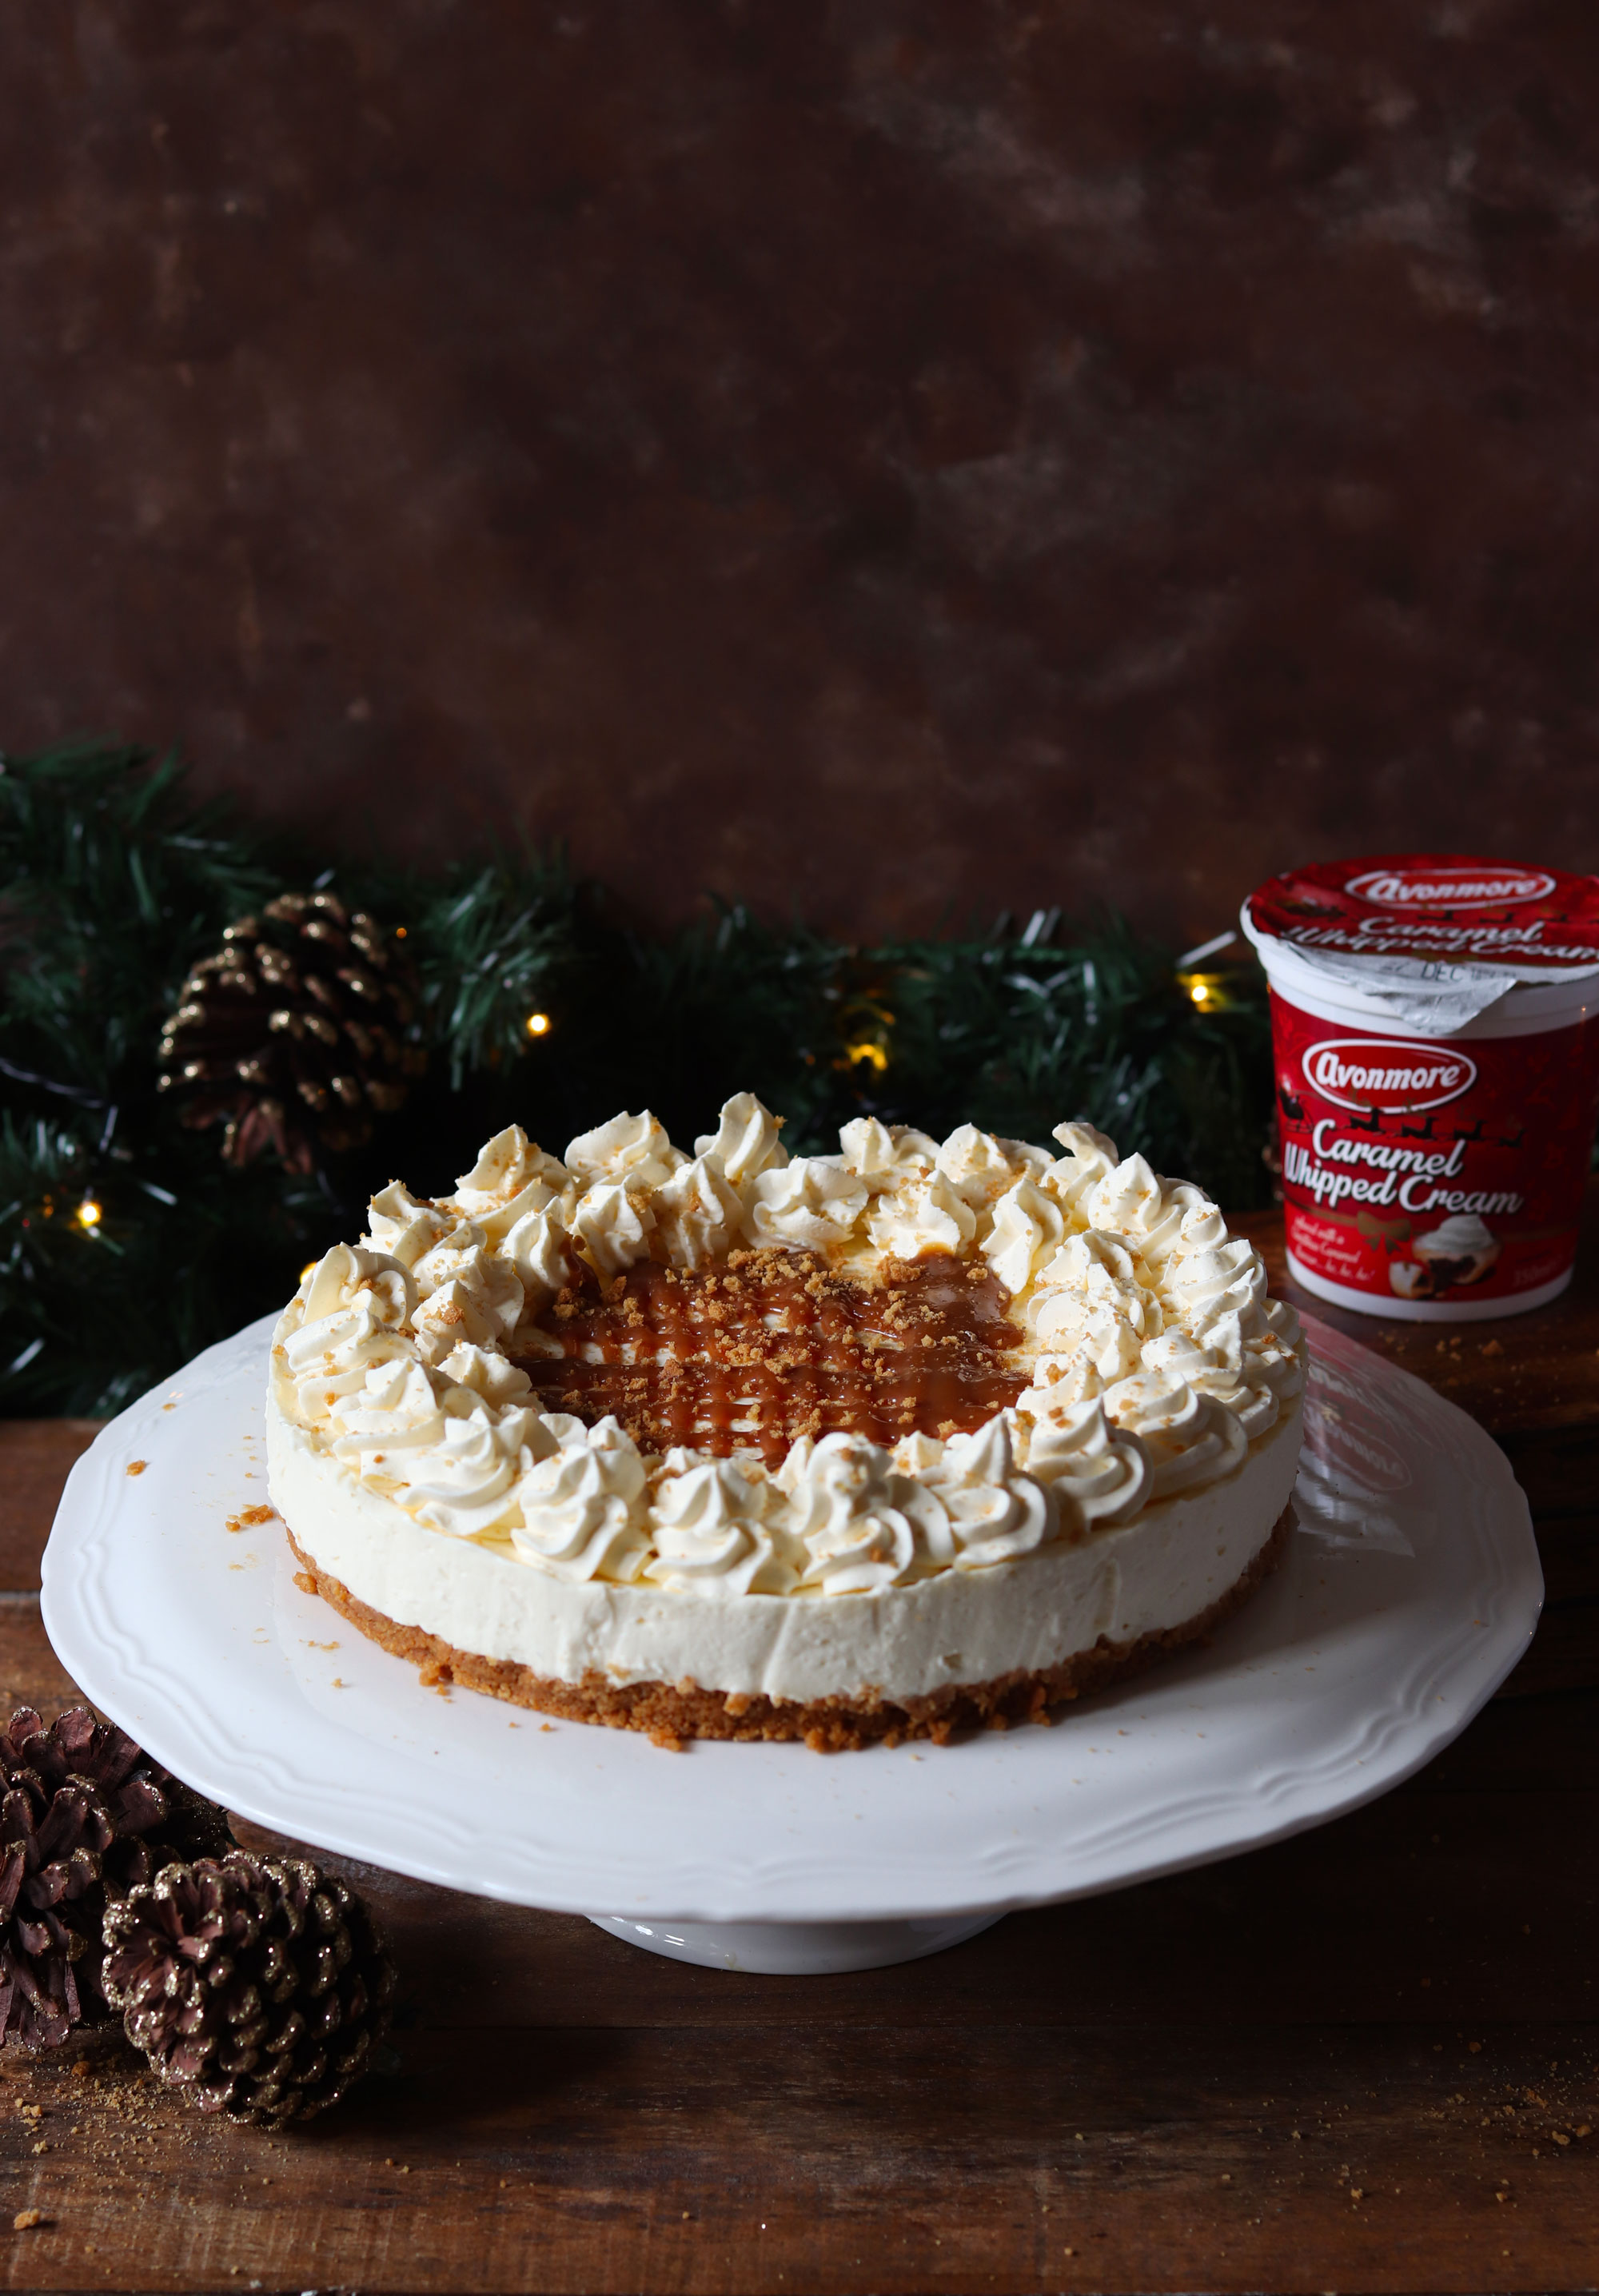 NO BAKE CARAMEL CHEESECAKE WITH A GINGER NUT CRUST AND AVONMORE CARAMEL WHIPPED CREAM FROSTING DRIZZLED WITH CARAMEL SAUCE